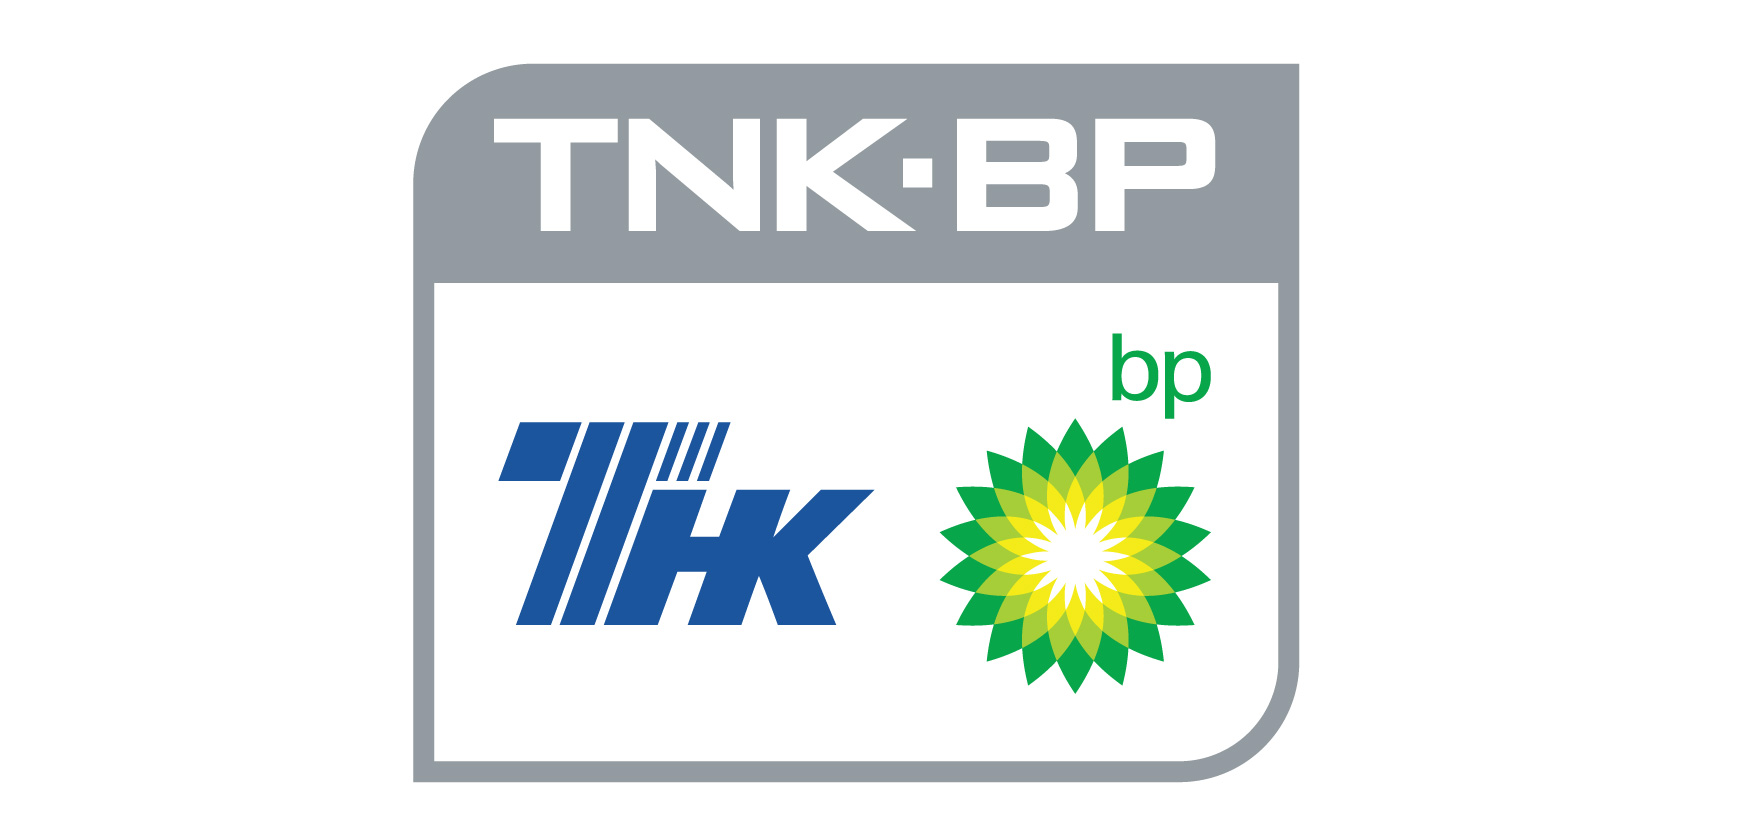 eth eth frac eth cedil ntilde eth ordm eth iquest eth frac ntilde eth micro eth sup ntilde tnk bp news ru ojsc verkhnechonskvcng a member of the tnk bp group of companies is aiming to boost oil production by 40% to 7 million tonnes by the end of the